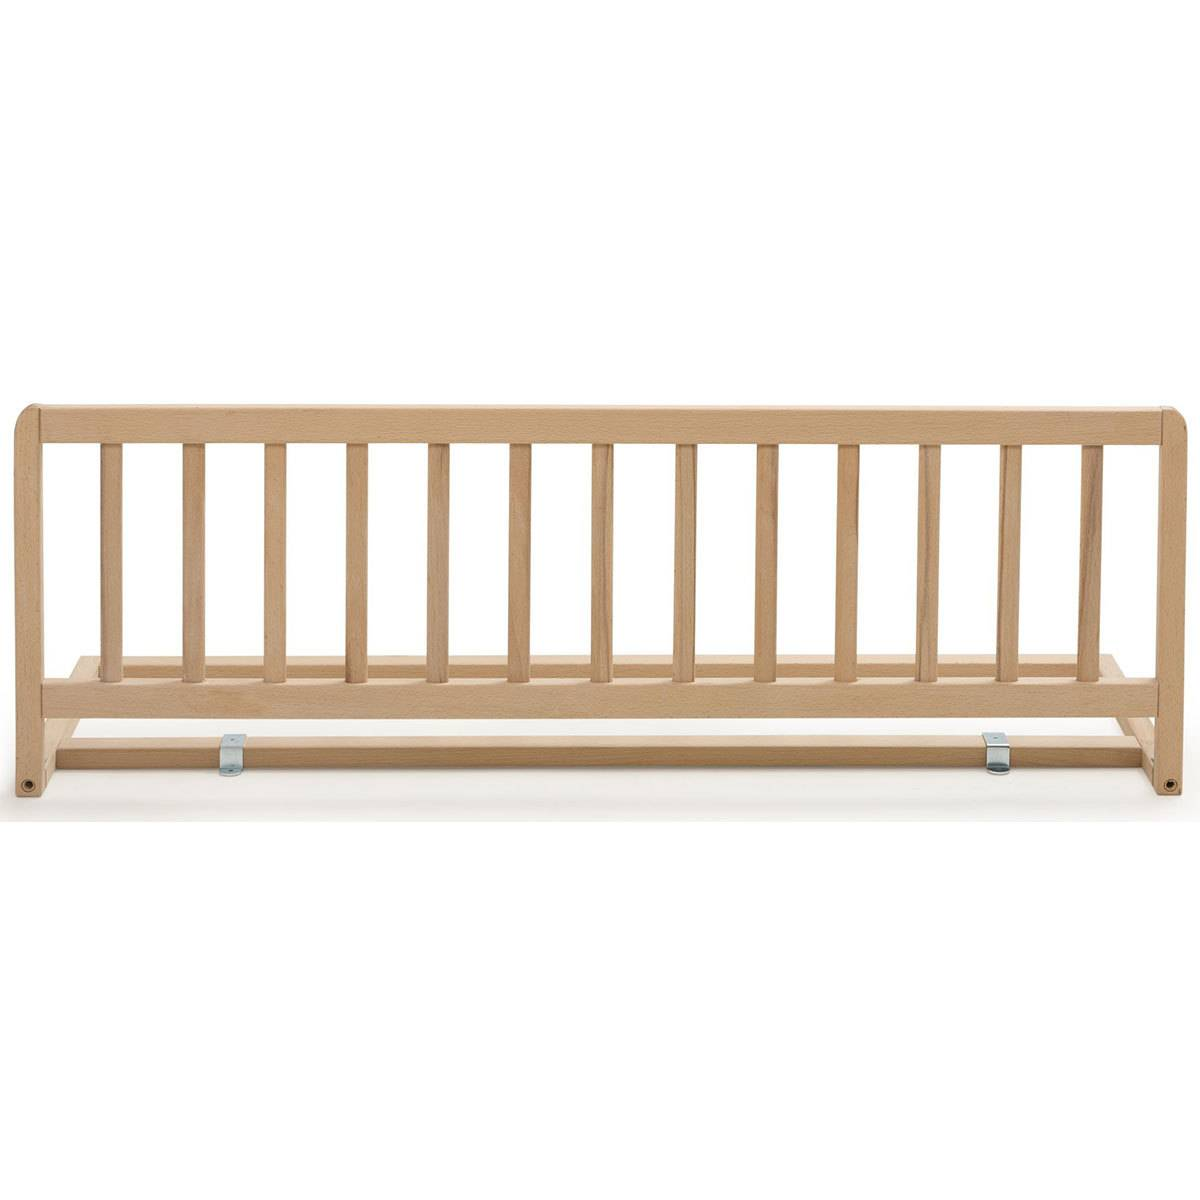 Geuther Barrière de Lit Sweat Dream 140 cm - Bois